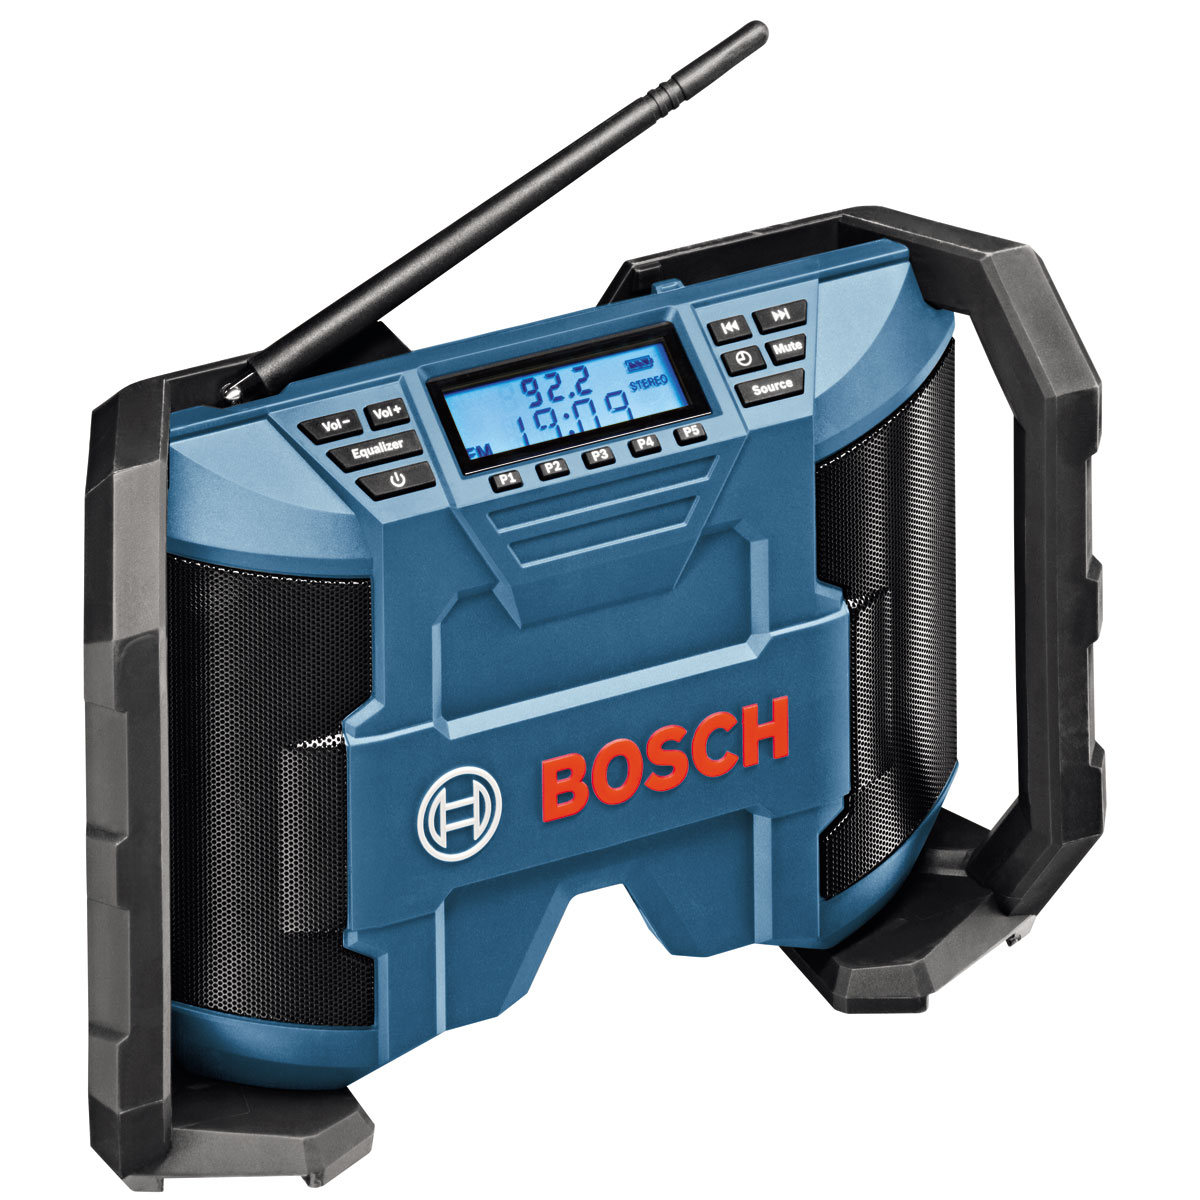 BOSCH GML10.8VN 10.8 VOLT JOBSITE RADIO WITH 2 x AAA BATTERIES AND AUX IN CABLE AND DC/AC ADAPTOR